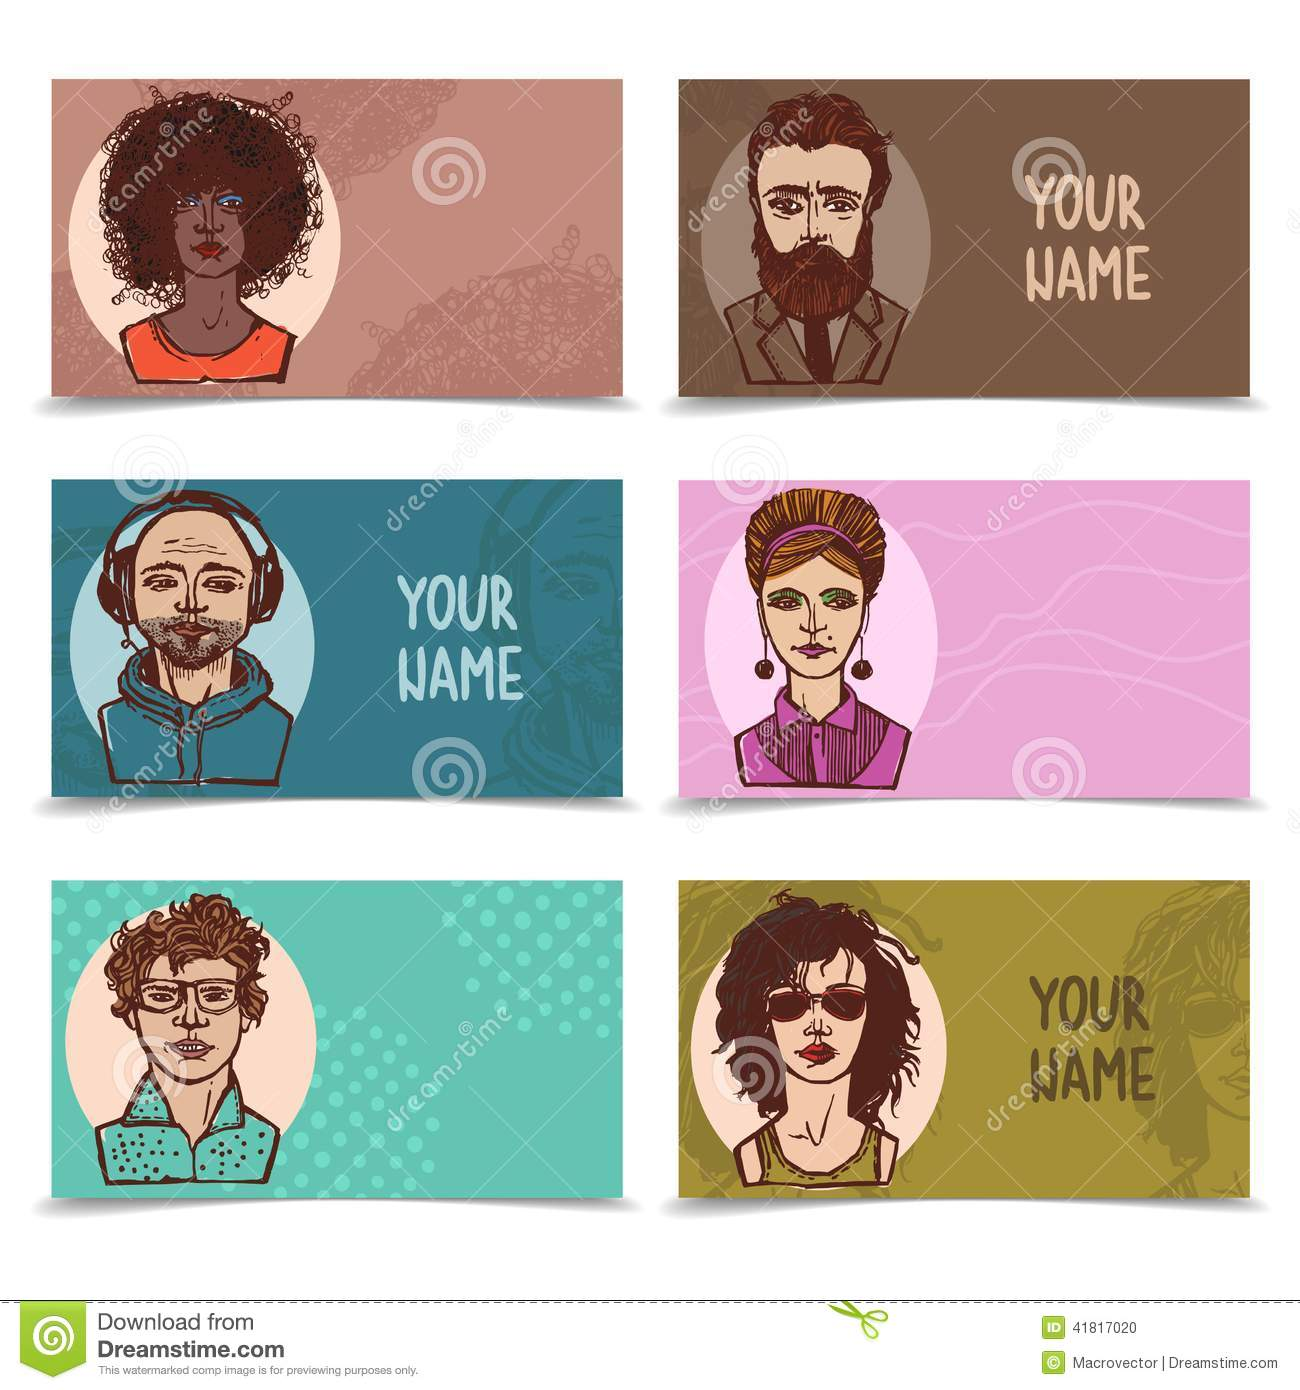 Business Cards With Sketch Faces Stock Vector - Illustration of ...